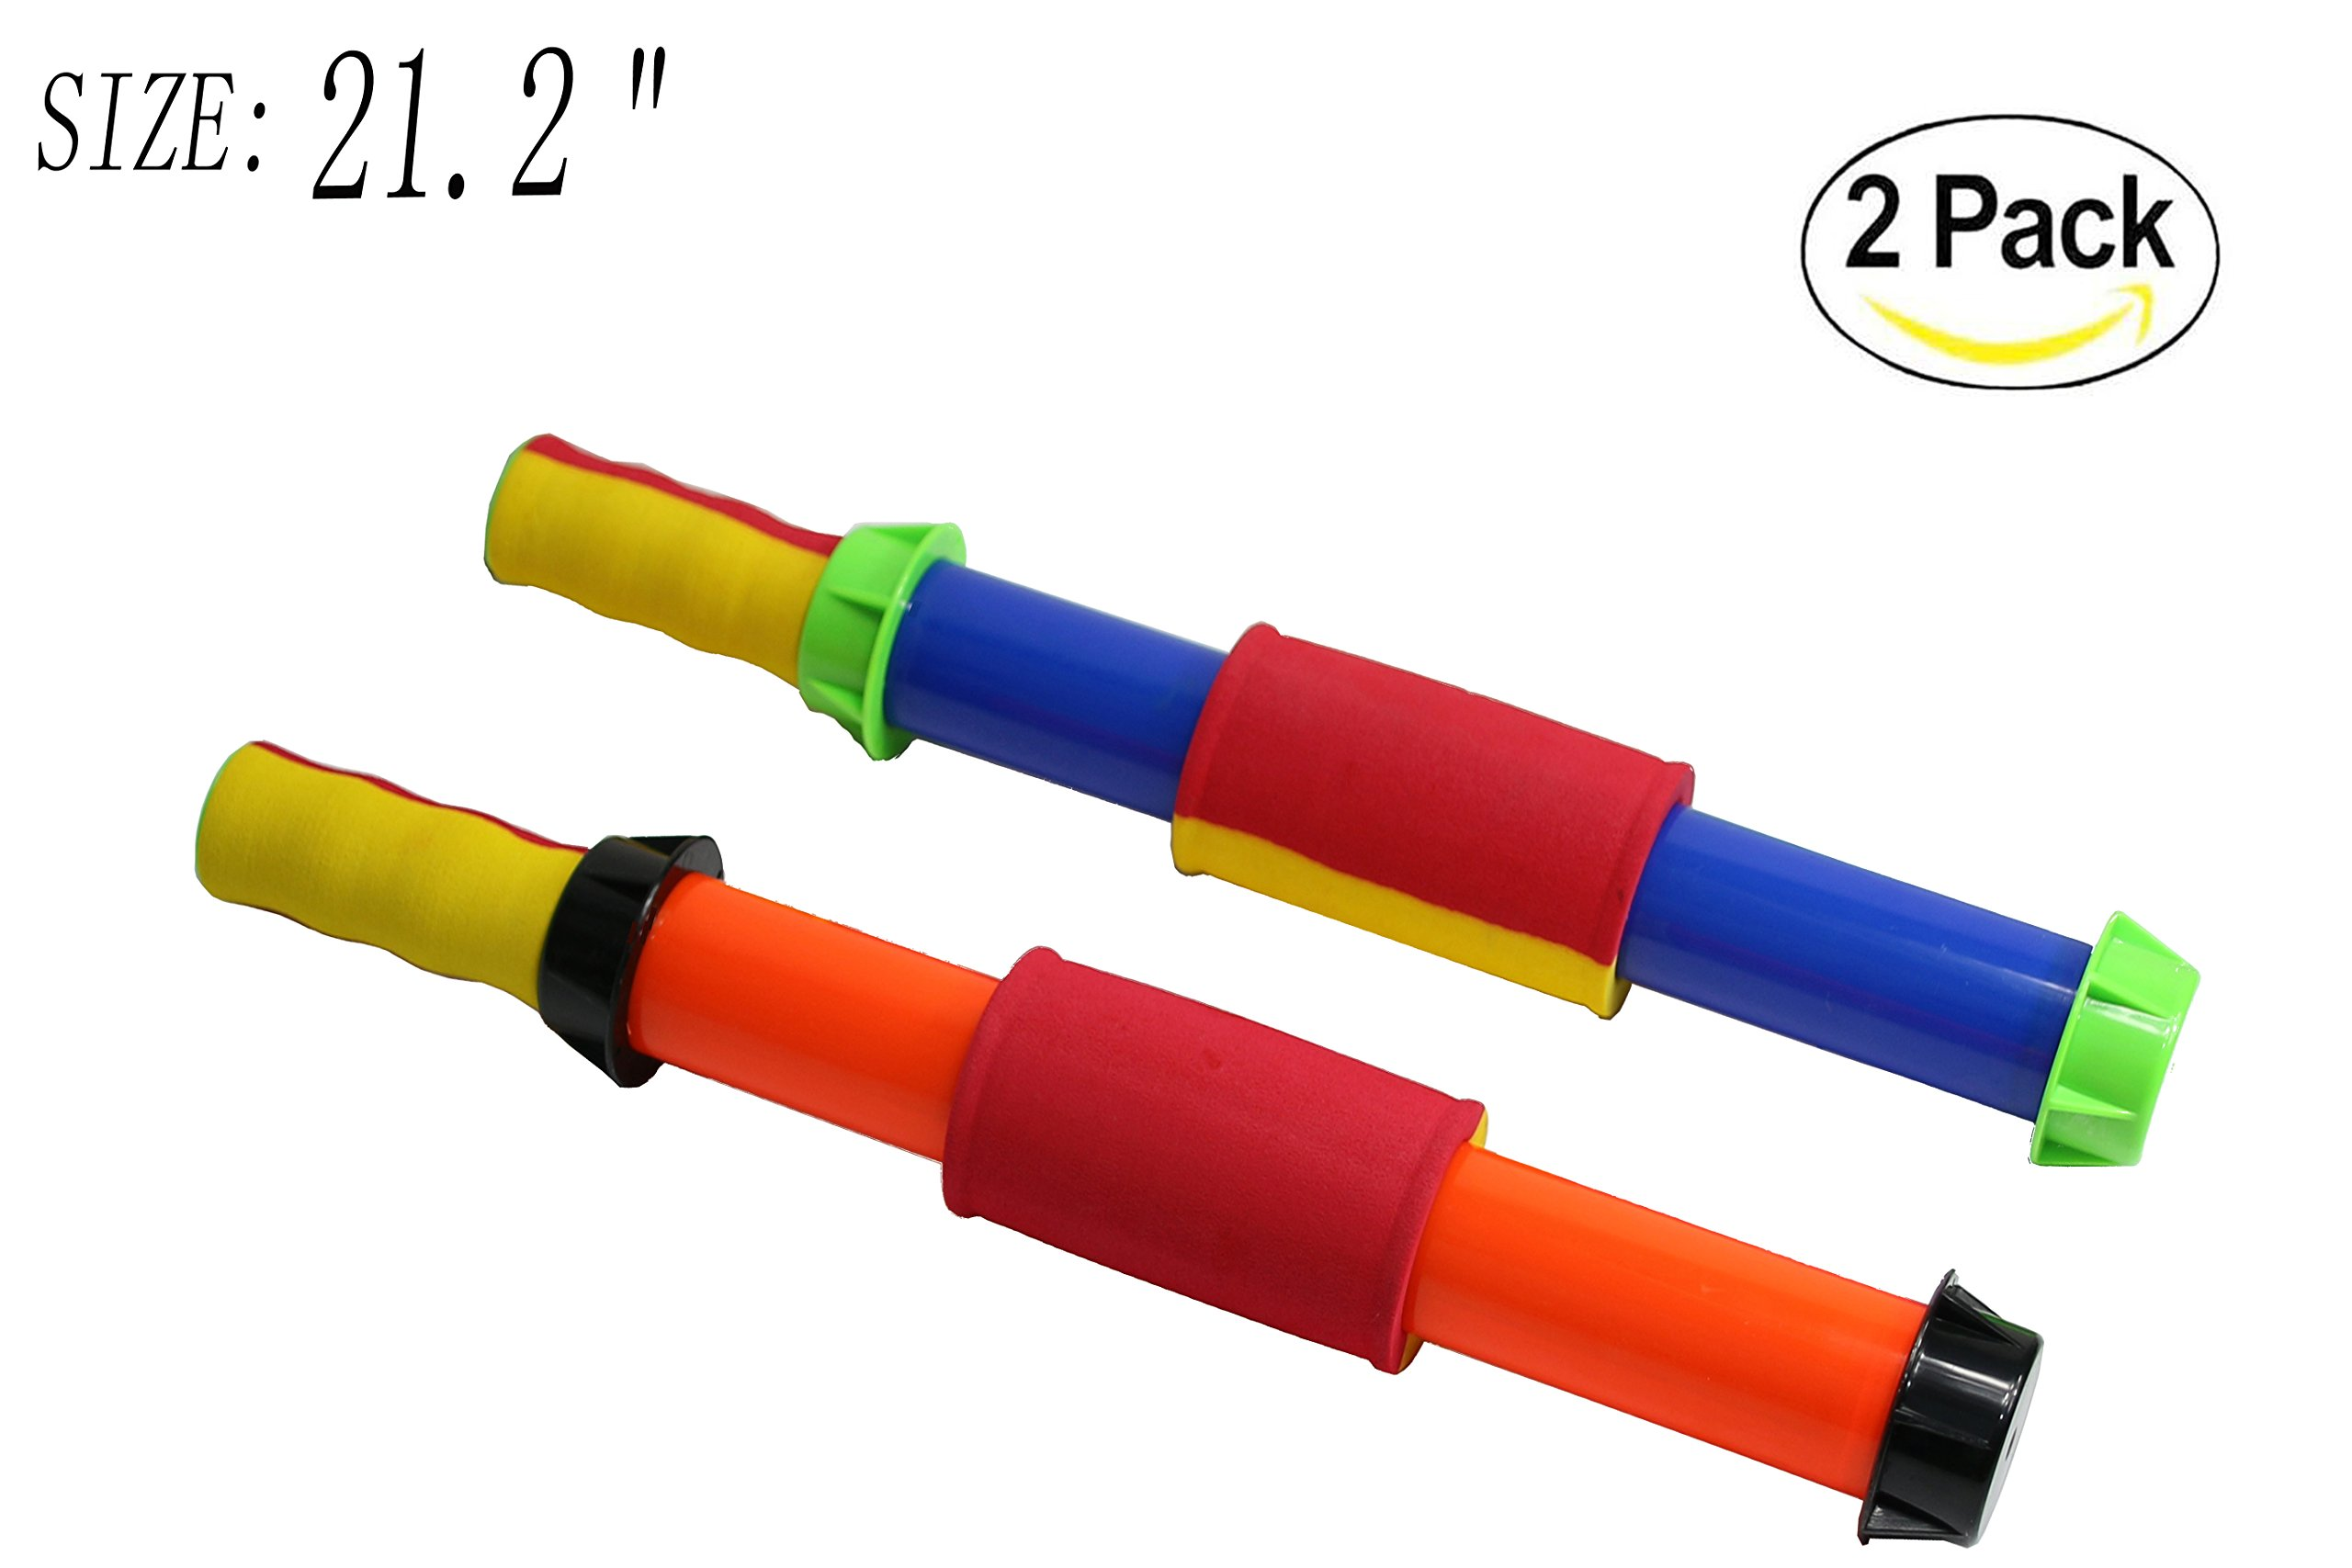 Water Guns With Easy Grip Handles super soaker squirt gun Fun Summer Toy water guns for kids adults ,Powerful Water Gun, Most gifted Summer Pool Beach Water Toy (2 Pack 21.2 IN)